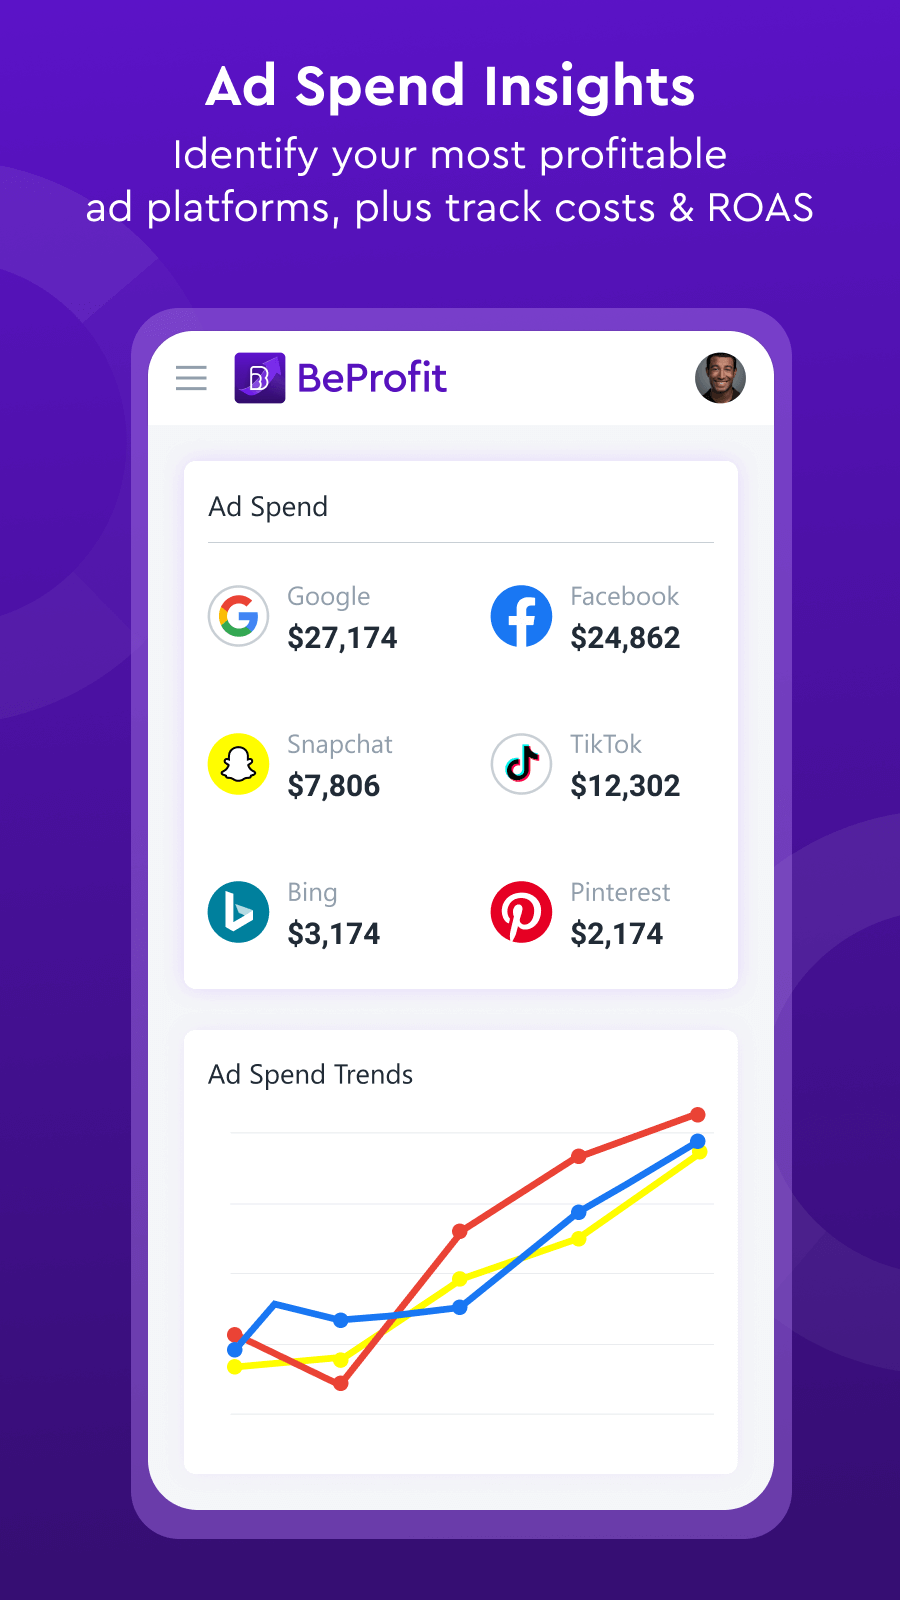 Identify your most profitable ad platforms, track costs and ROAS